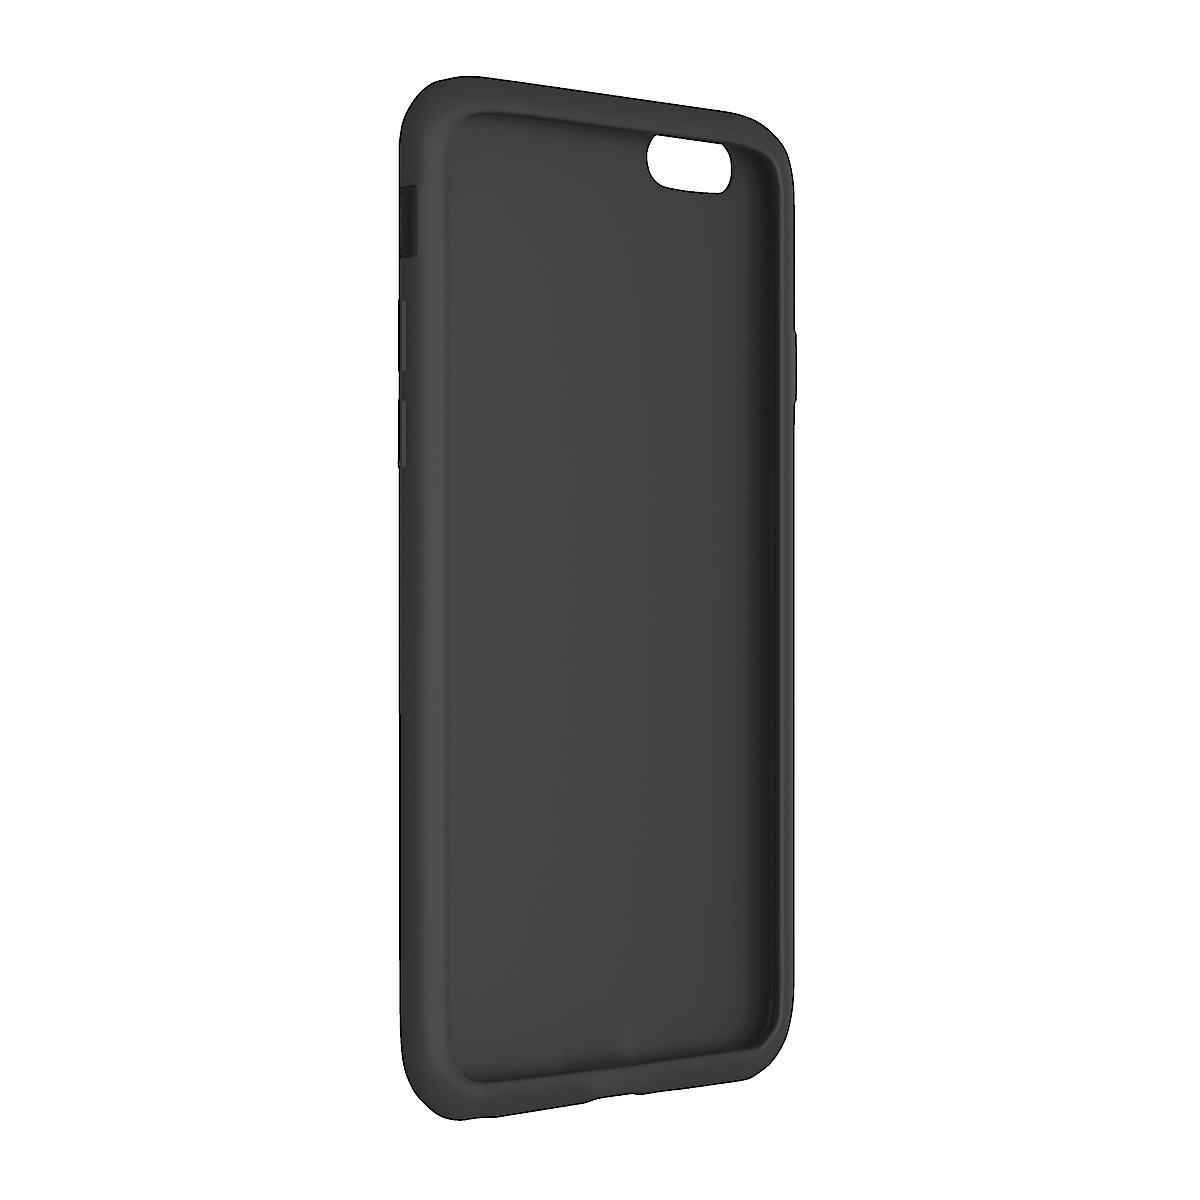 Kuori iPhone 6:lle/6S:lle, Soft Grip